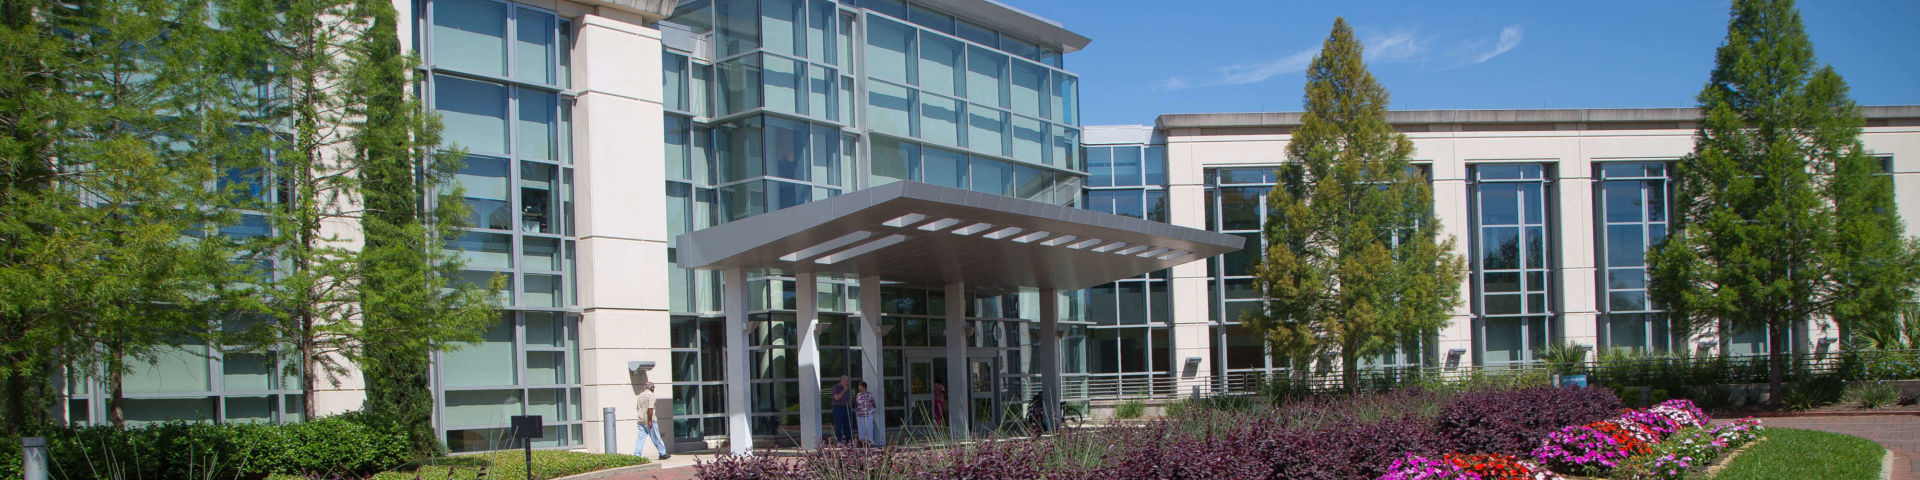 Exterior of the Mitchell Cancer Institute